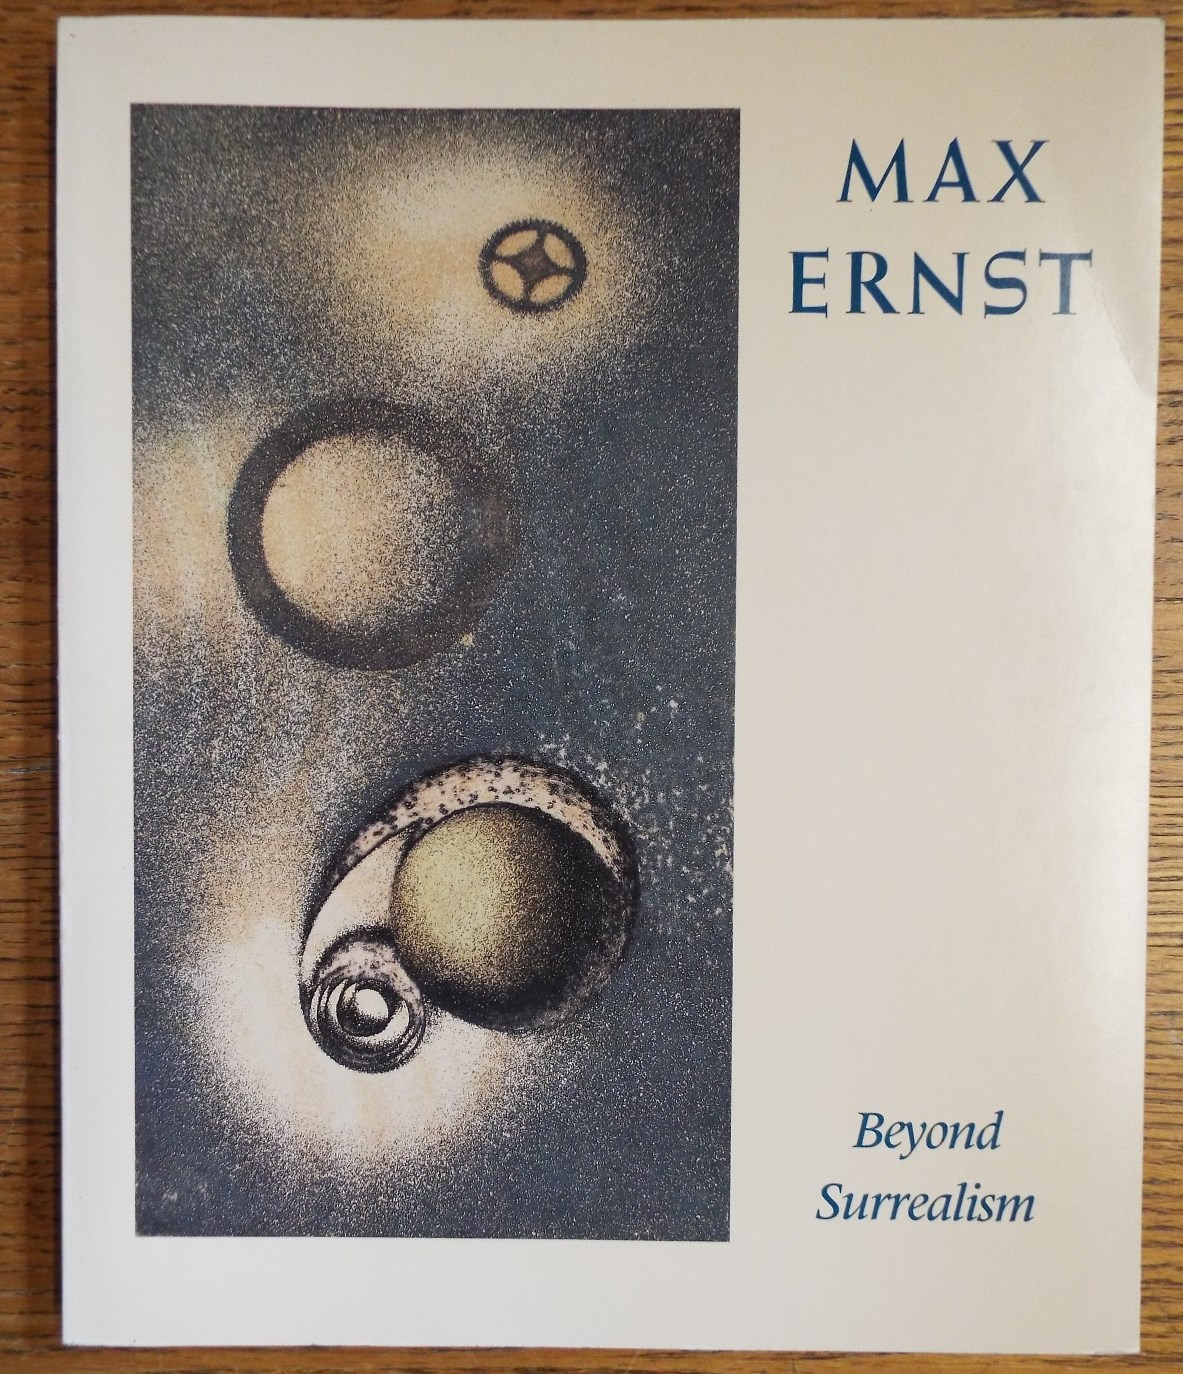 RAINWATER, ROBERT (EDITOR) - Max Ernst: Beyond Surrealism, a Retrospective of the Artist's Books and Prints